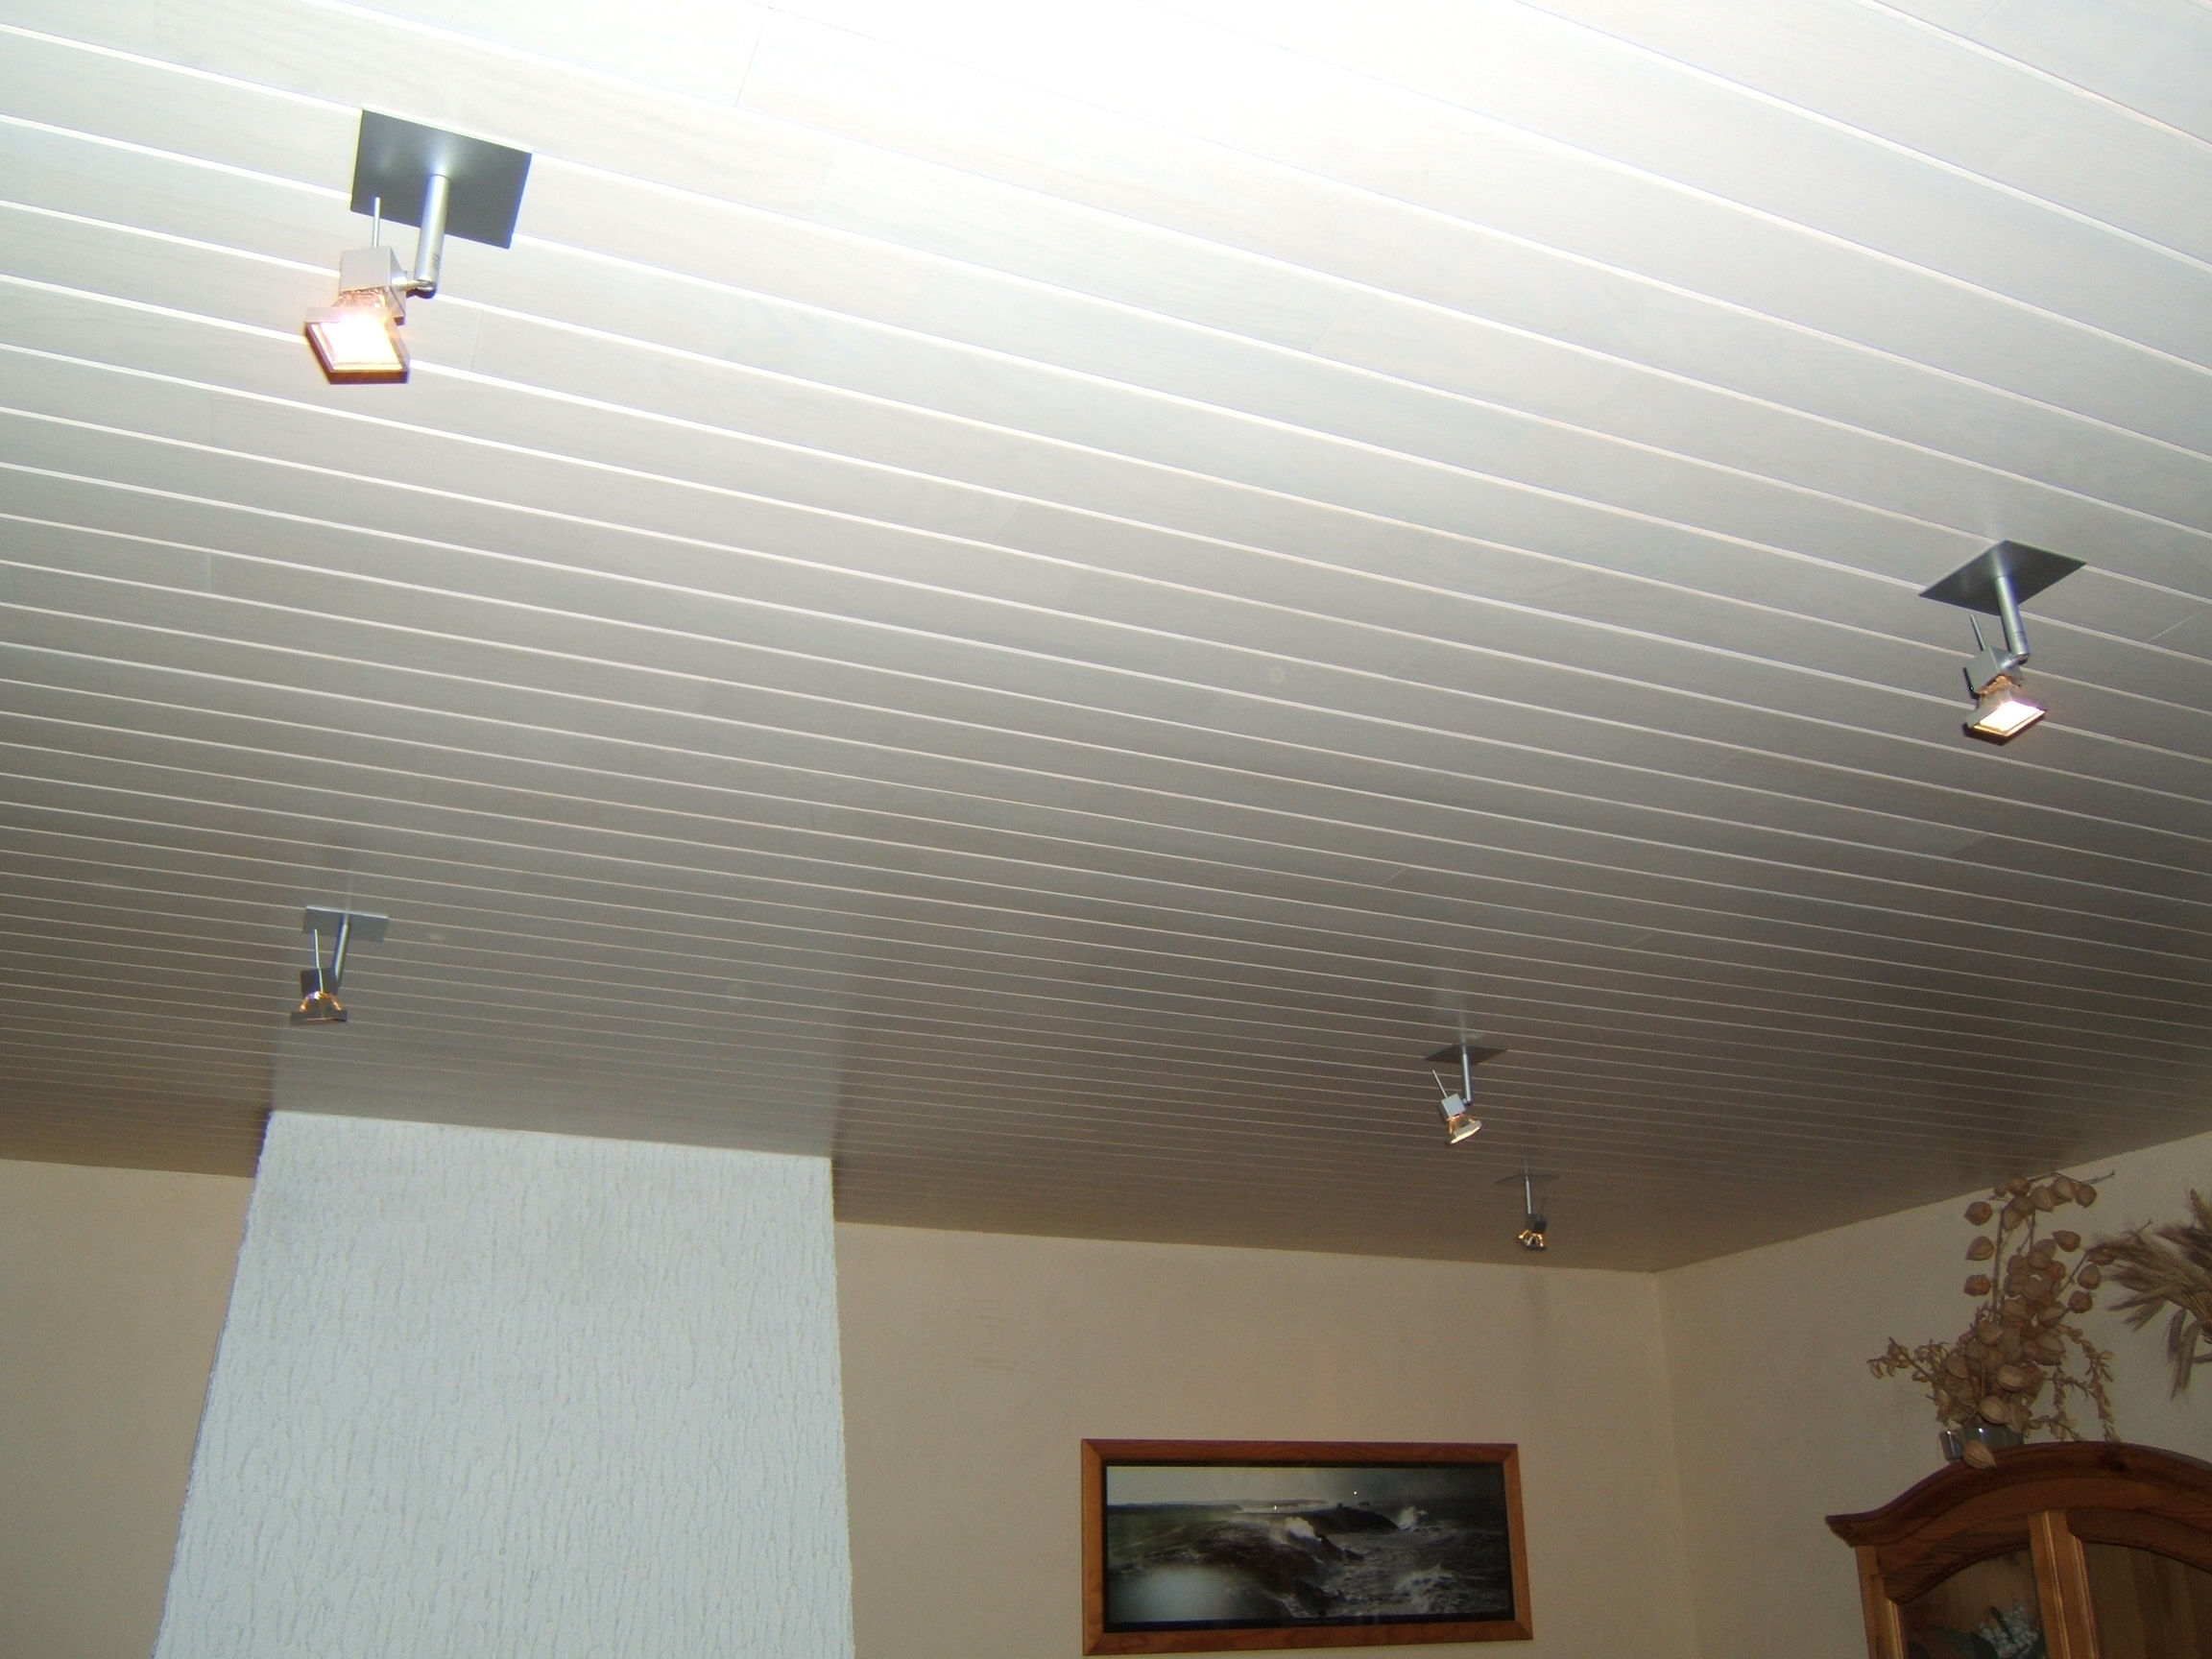 Pose de lambris pvc en soubassement pau estimation devis for Peindre un plafond en lambris pvc